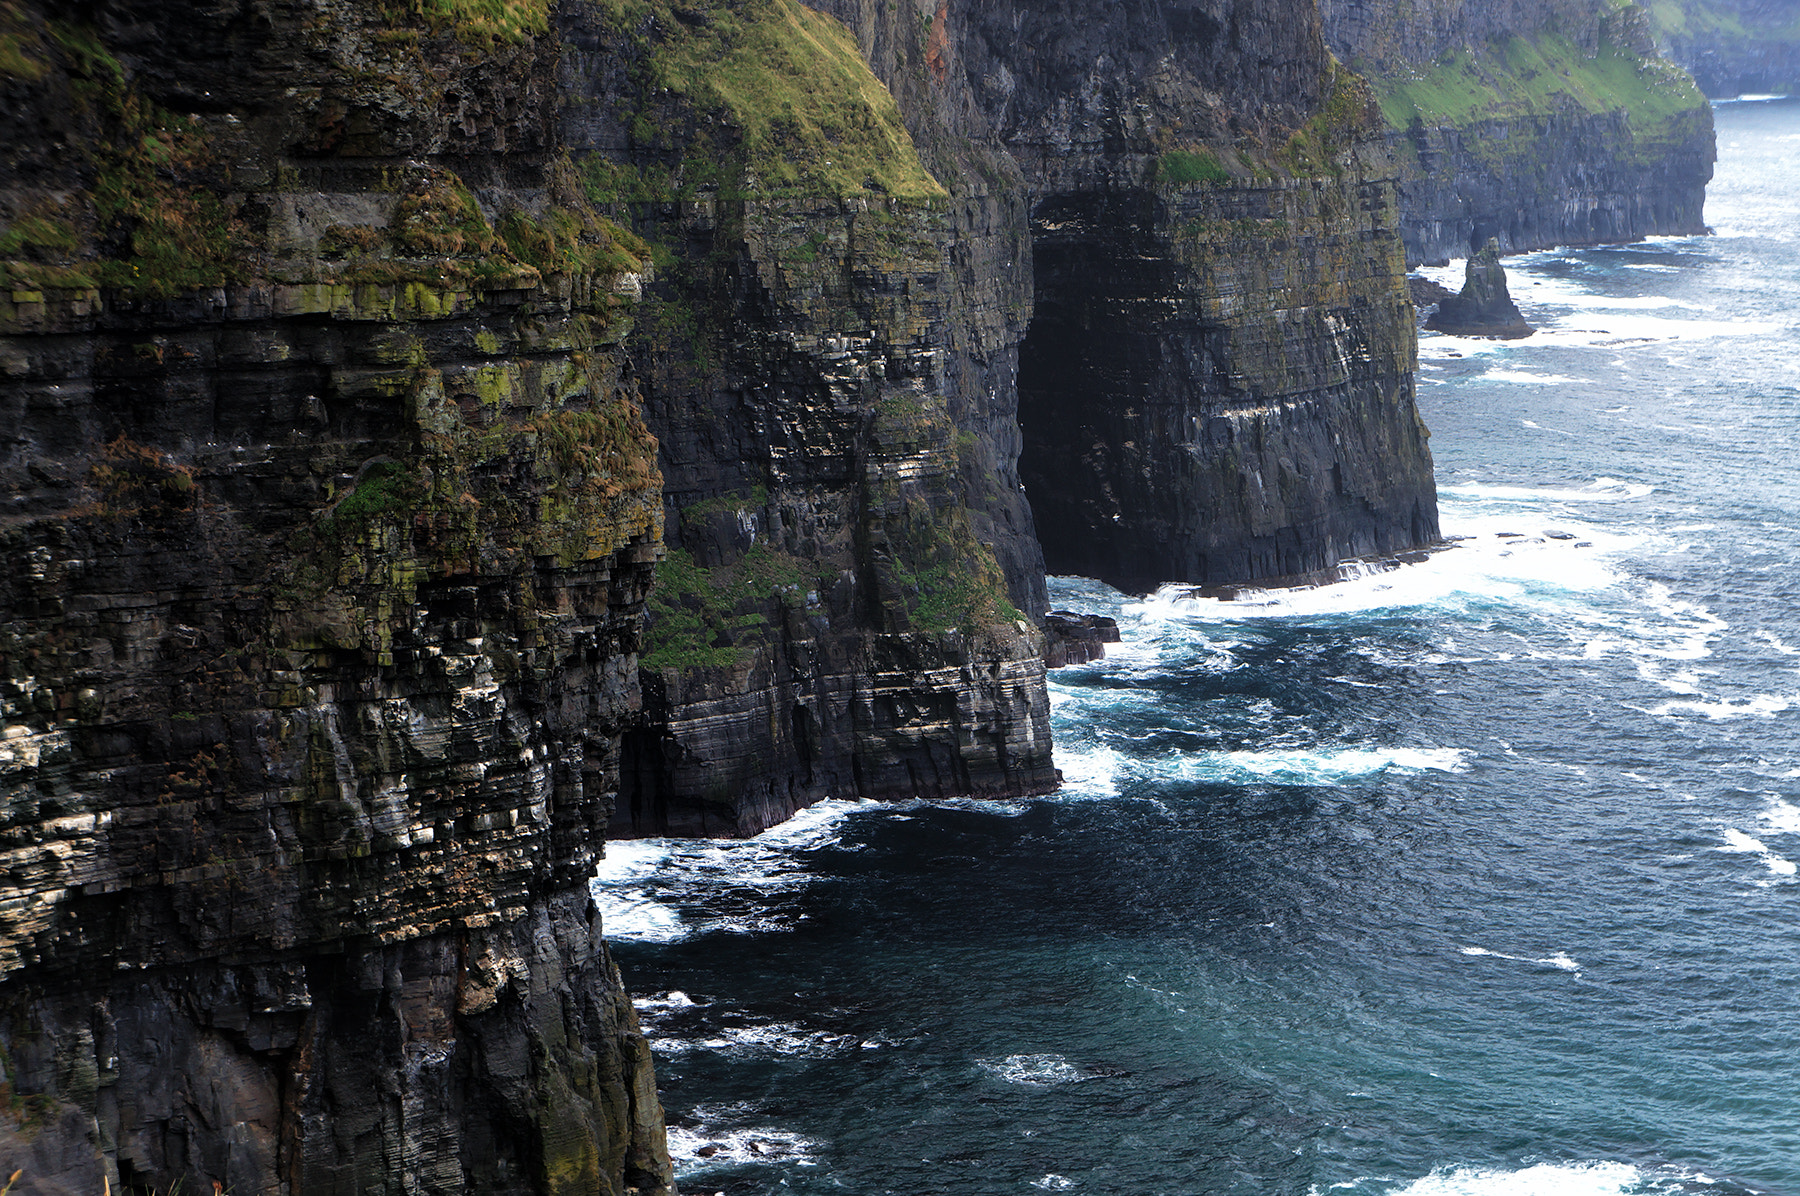 Photograph Cliffs of Moher by Chris Eaves on 500px